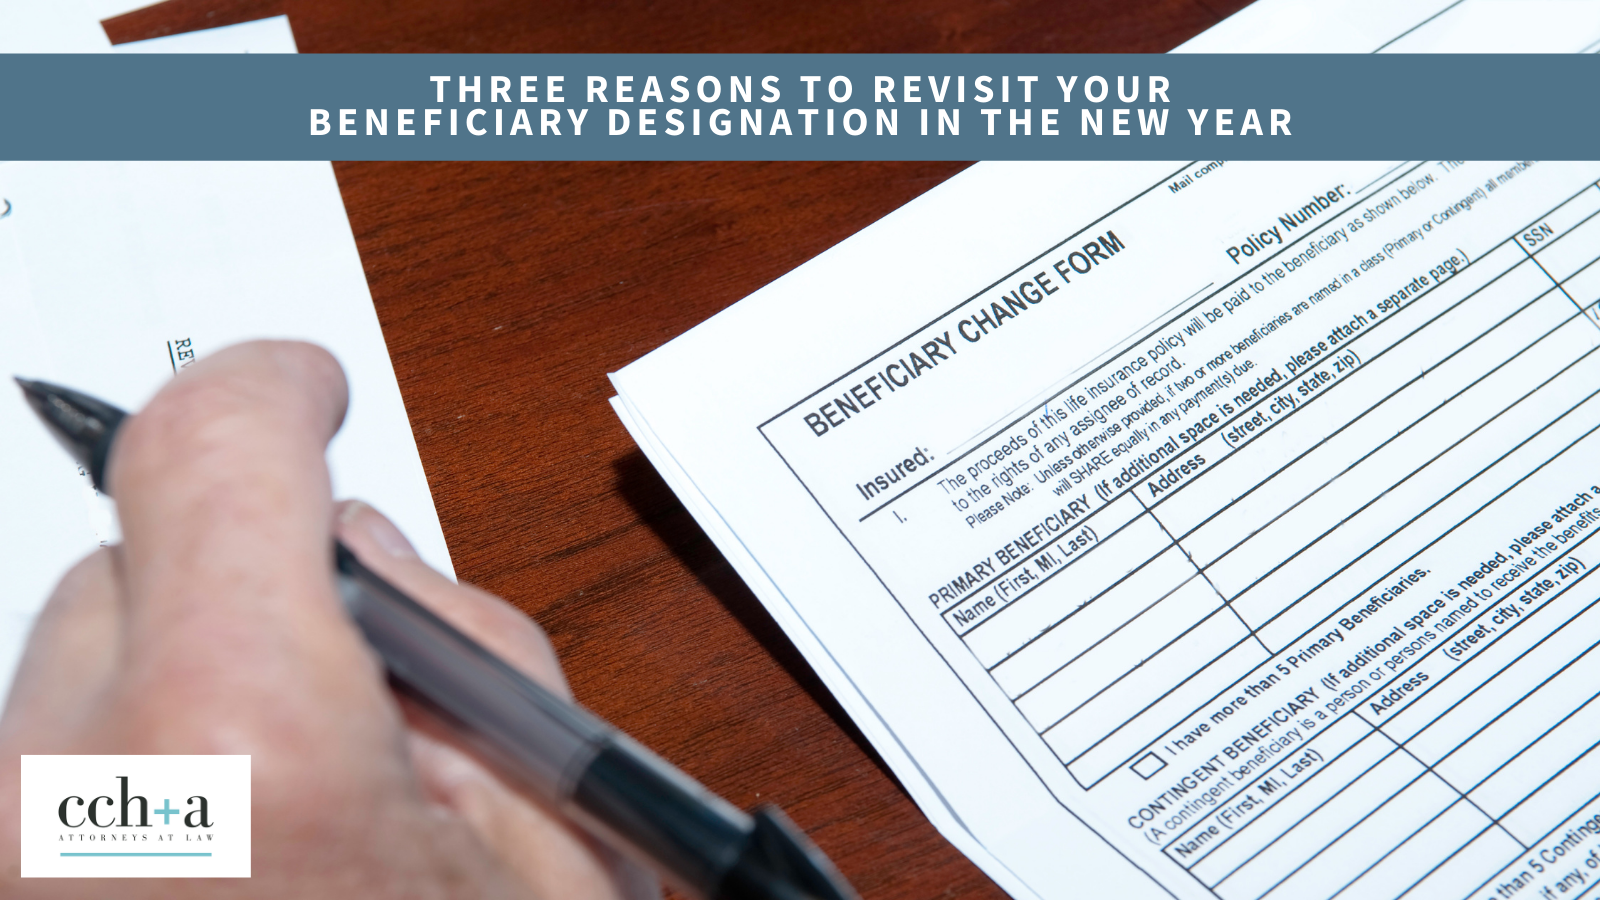 Ccha jan 2020 Three Reasons to Revisit and Select Your Beneficiary in the New Year twitter FINAL